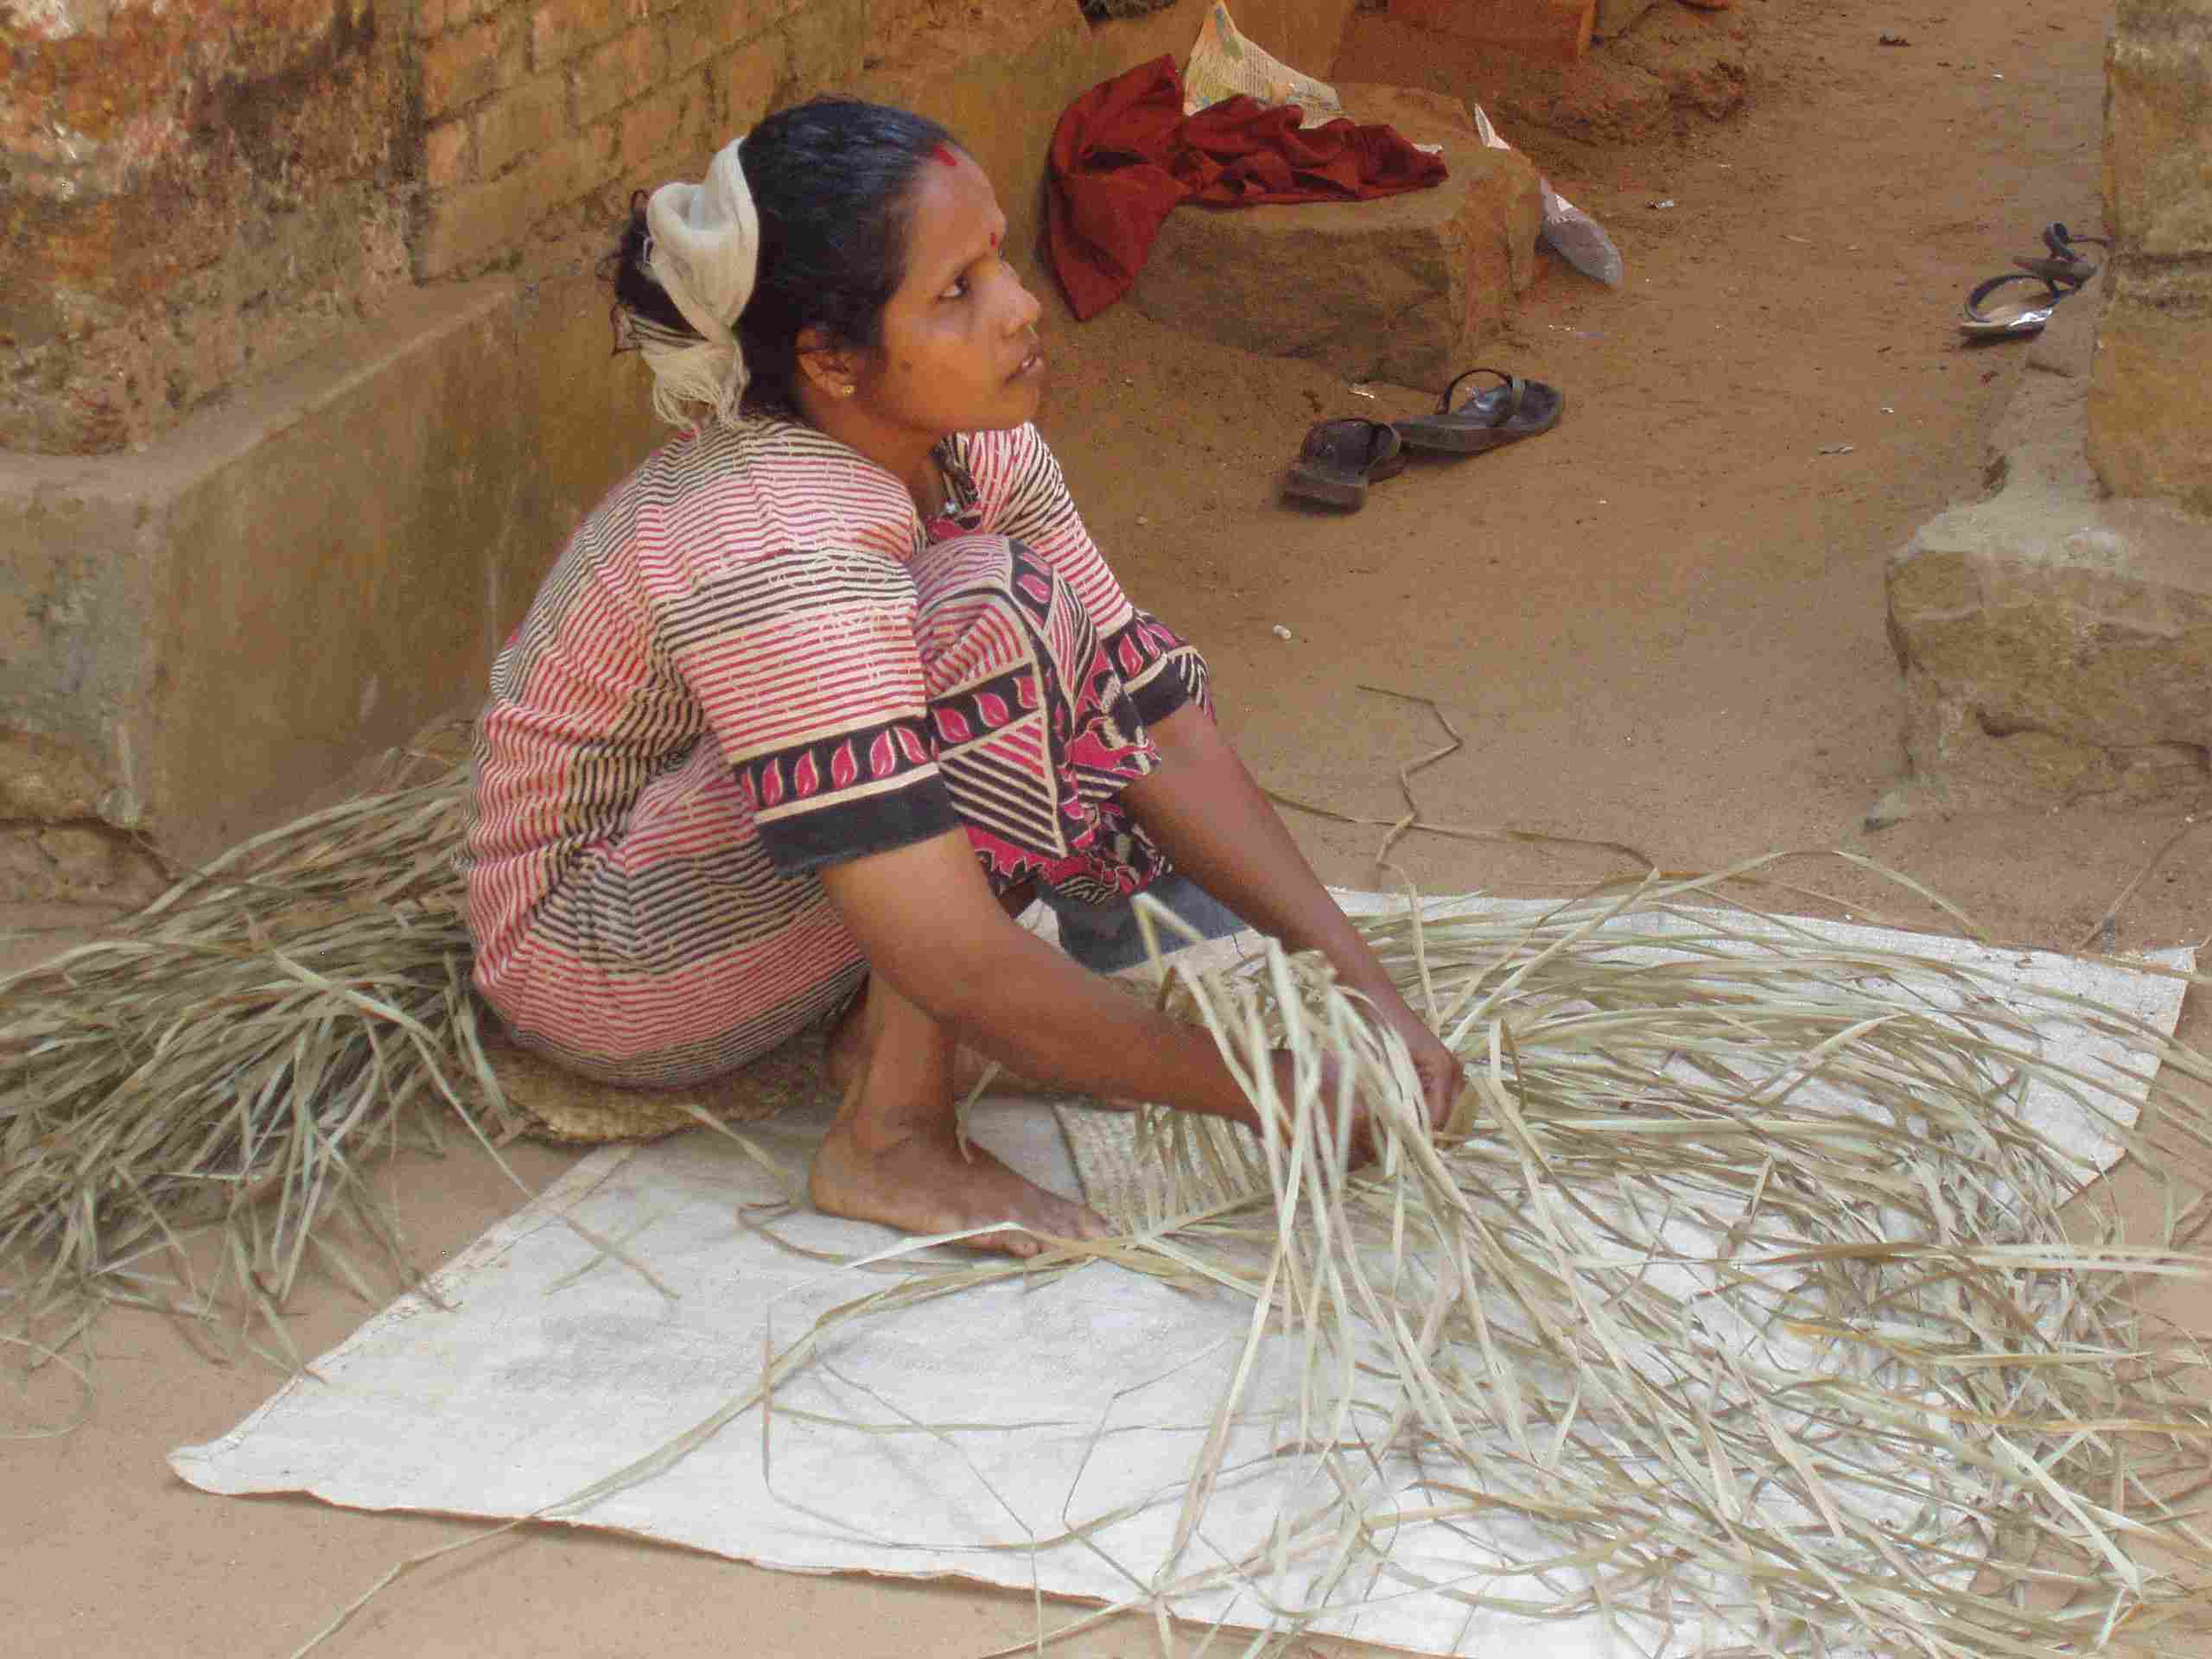 From these unimpressive things the basket weaver creates something beautiful